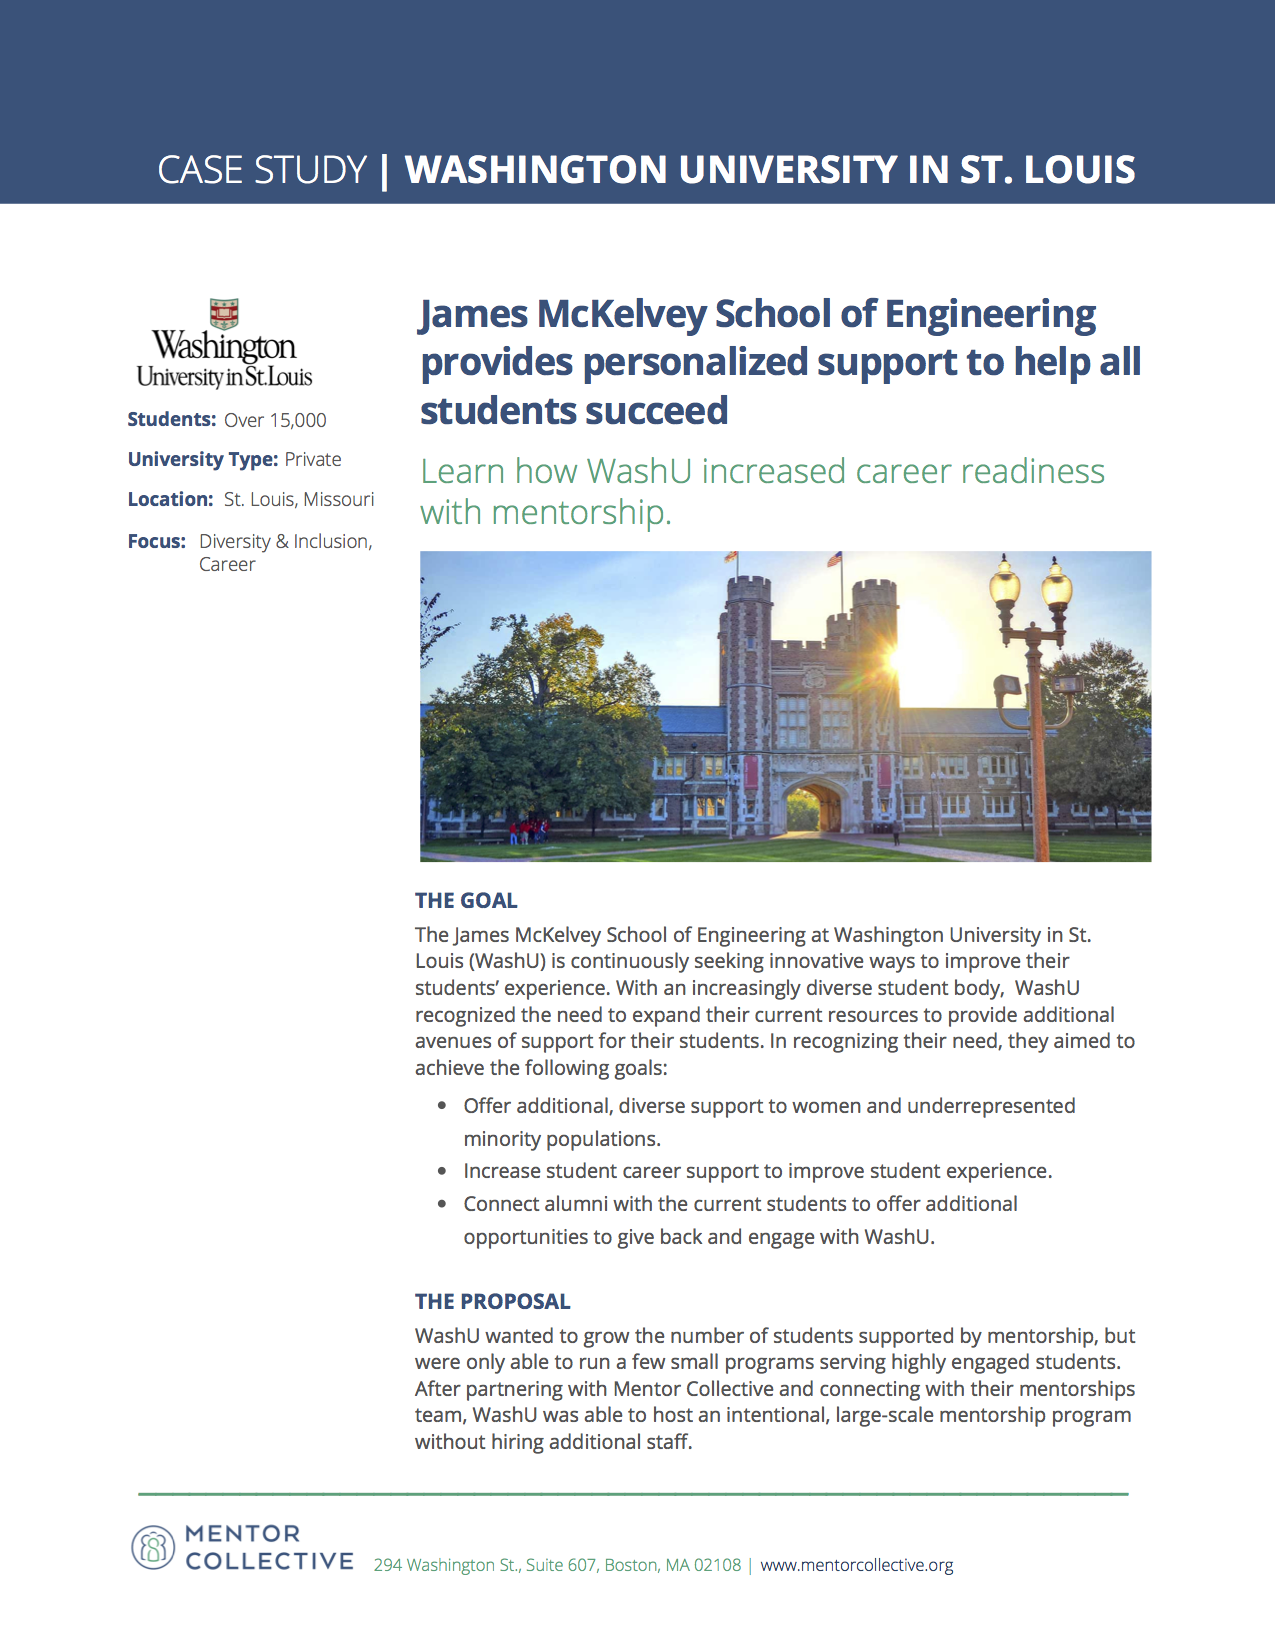 Case Study: Washington University in St. Louis - Learn how the James McKelvey School of Engineering at Washington University in St. Louis increased career readiness and alumni engagement with mentorship.